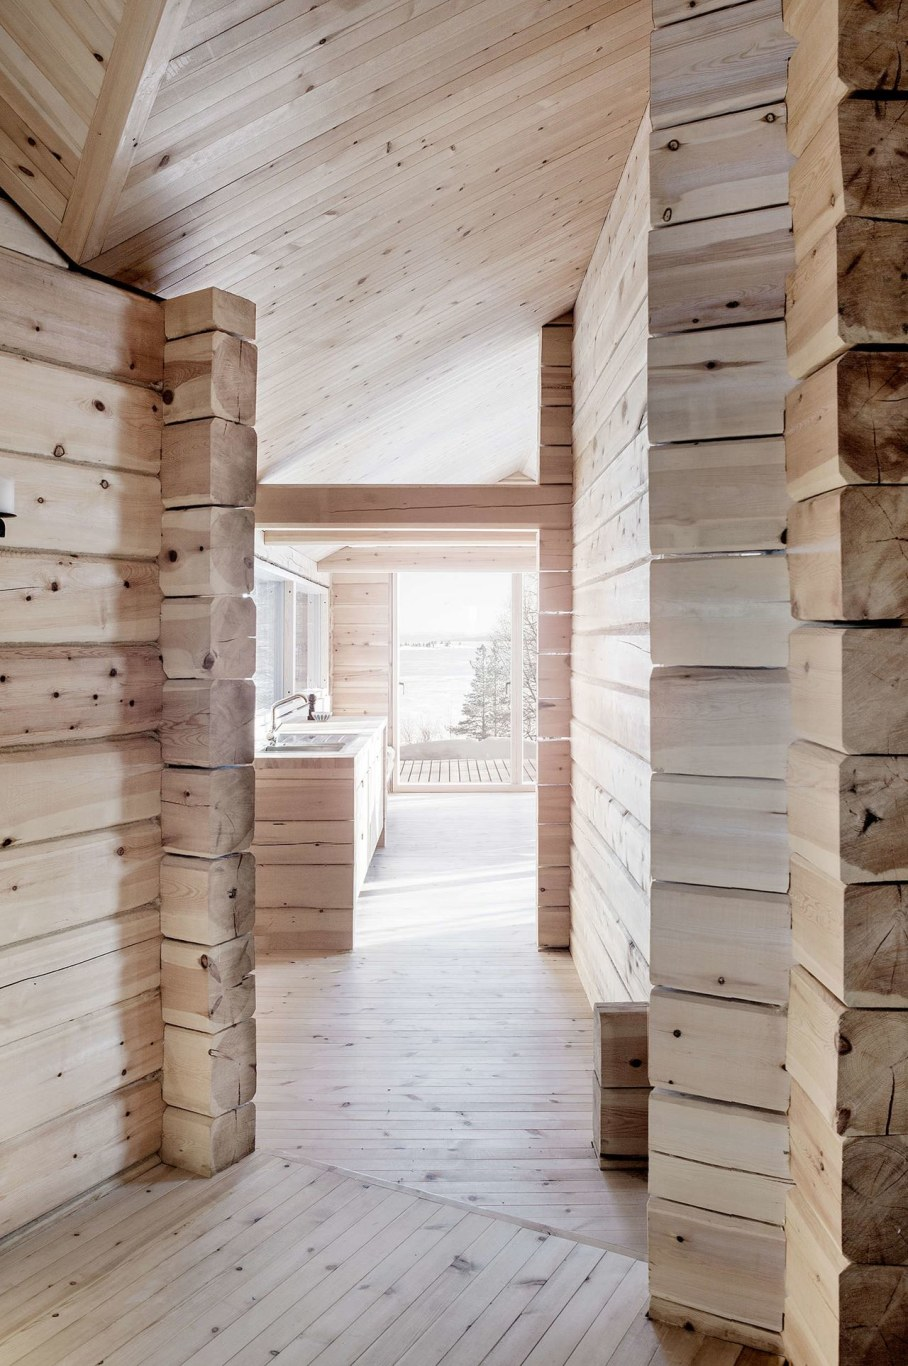 The wooden house in Norway - interior 4